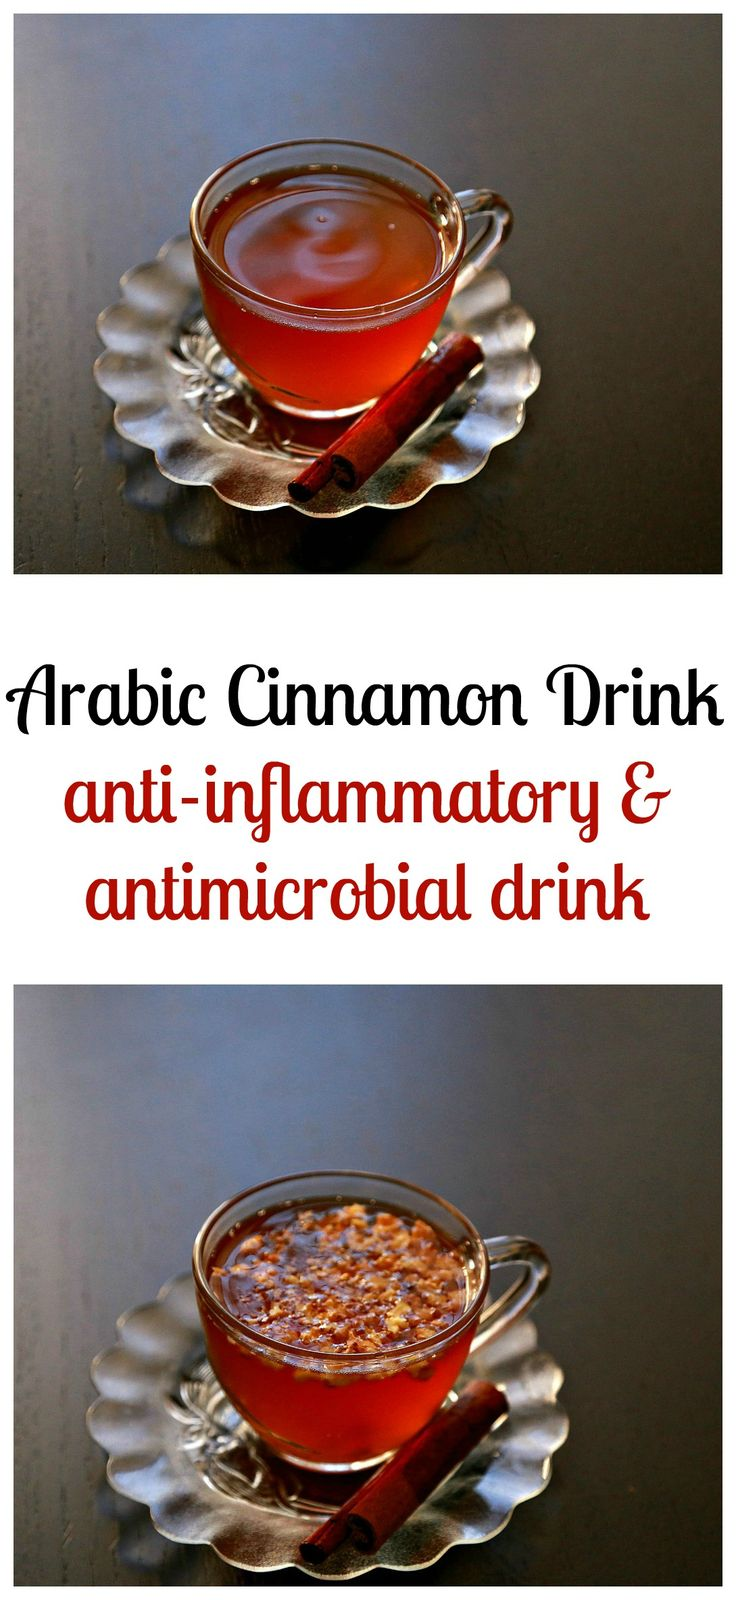 A relaxing hot cinnamon drink that is packed with nutrients, easy to make and sure to ease anxiety, make it tonight for a quite night!